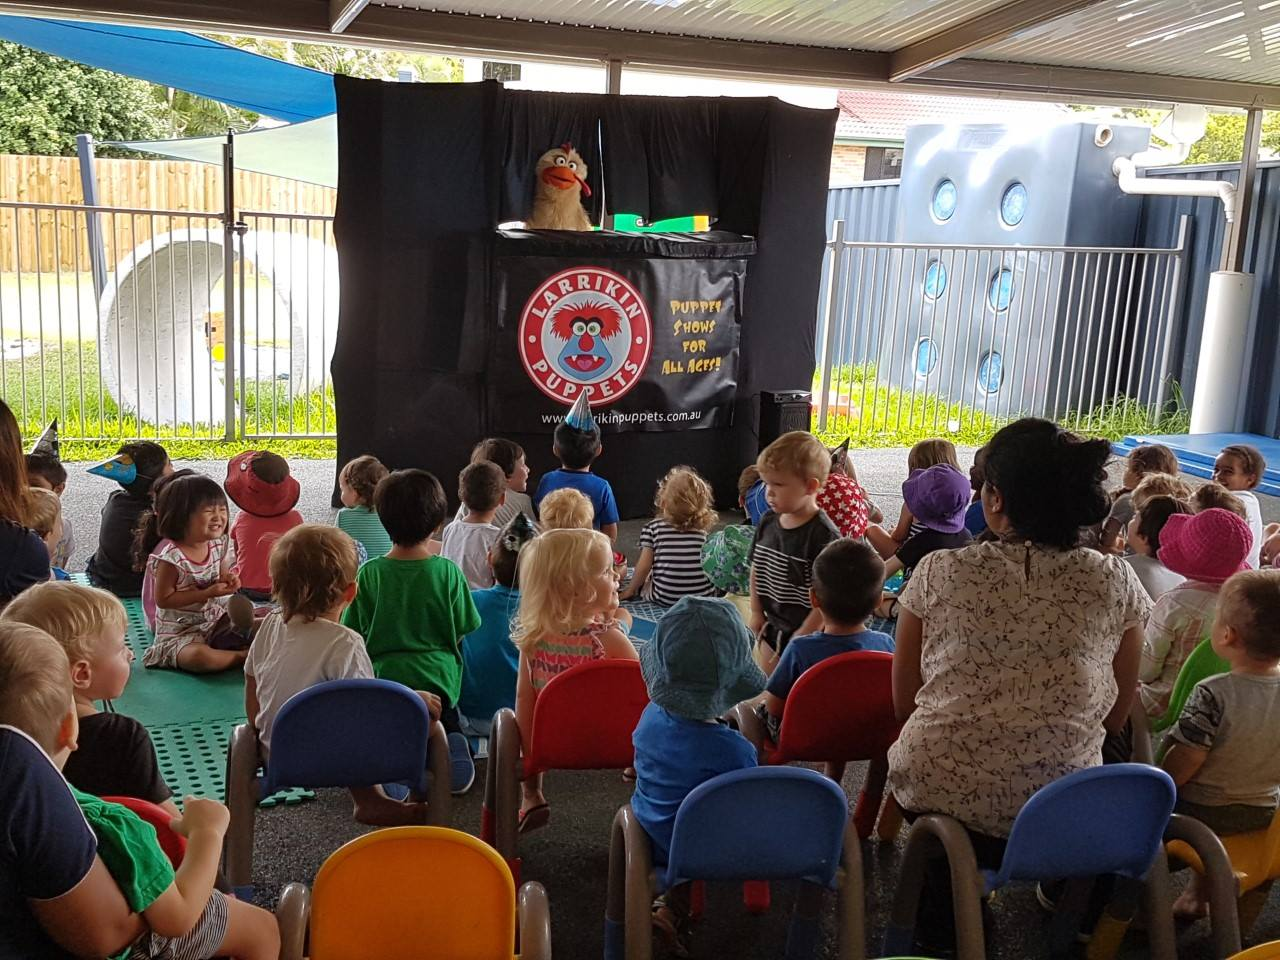 Children's Entertainment, Children's Entertainers, Party Entertainment For Hire | Puppet Show, Puppetry Workshops - Childcare Centres, Early Learning Centres, Taigum Child Care Centre